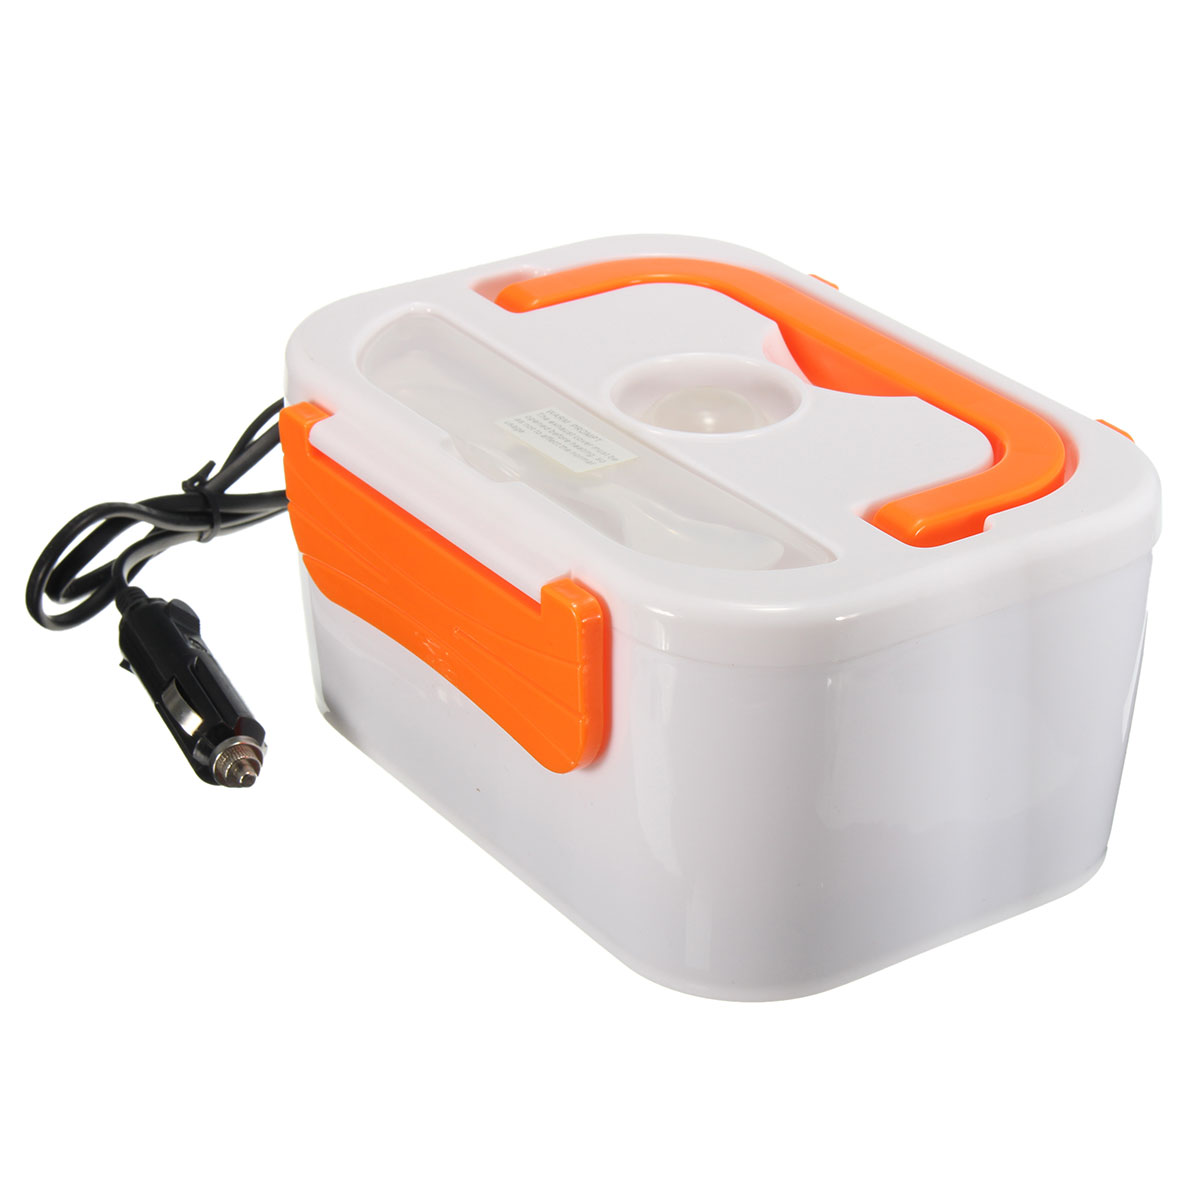 portable electric heated car plug heating lunch box bento box food warmer 12v. Black Bedroom Furniture Sets. Home Design Ideas